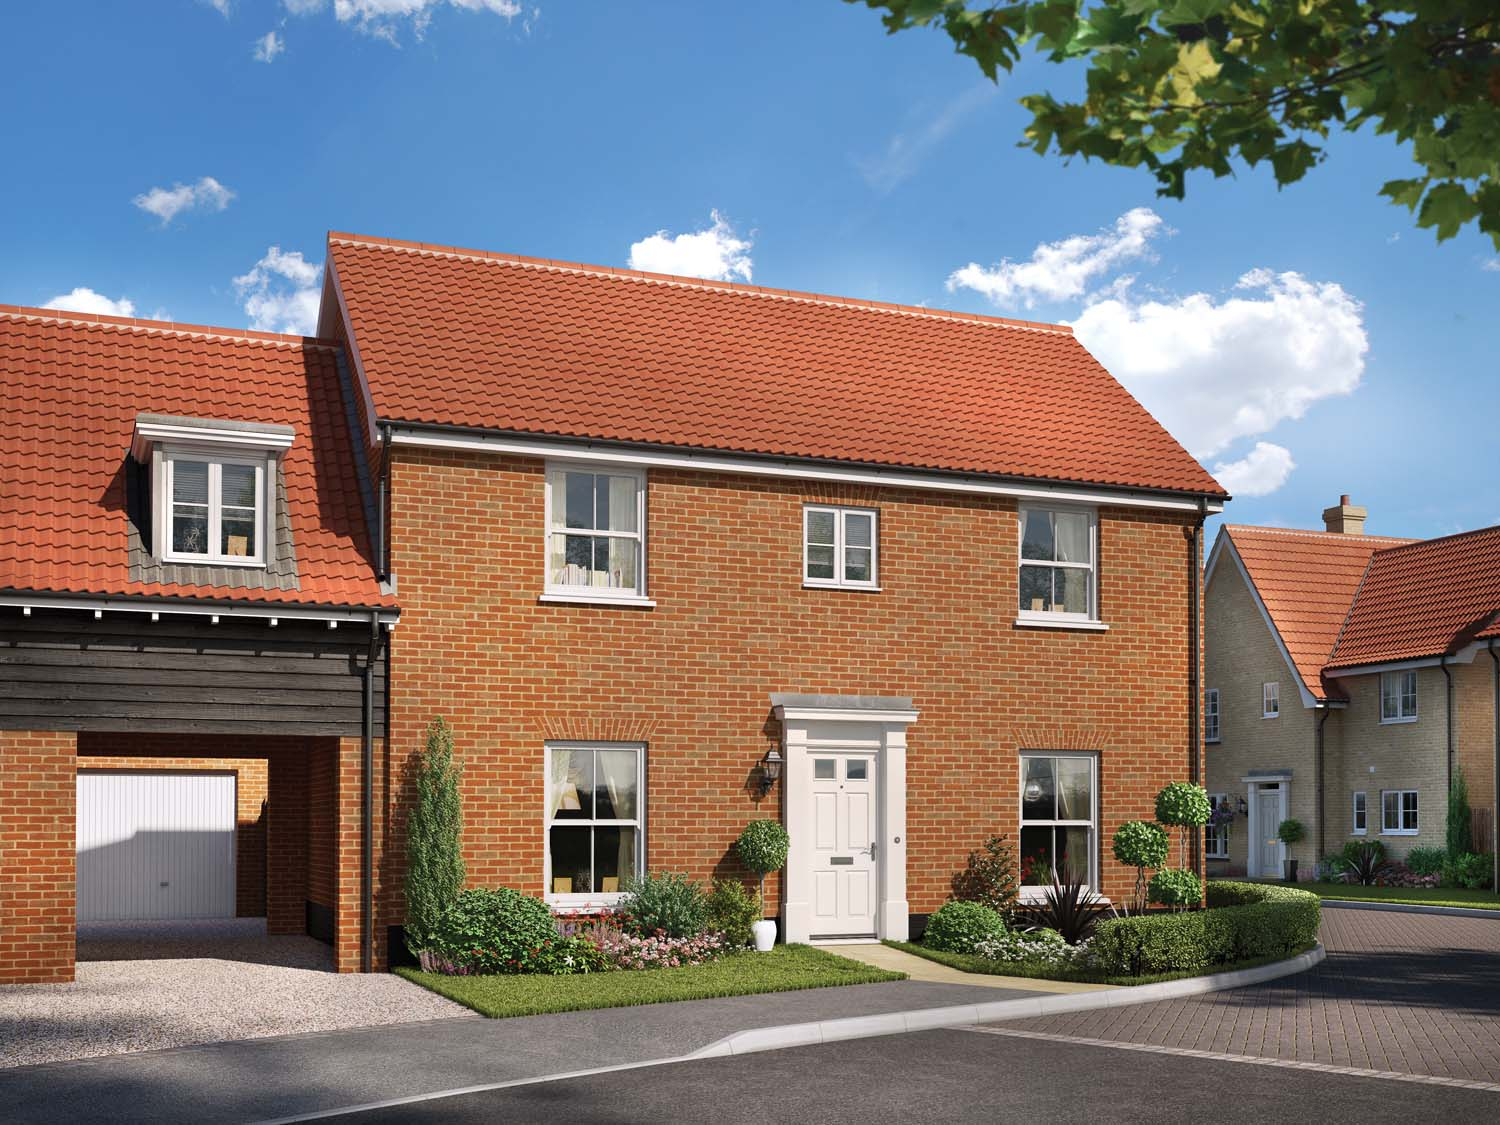 New Build Homes at Millers place